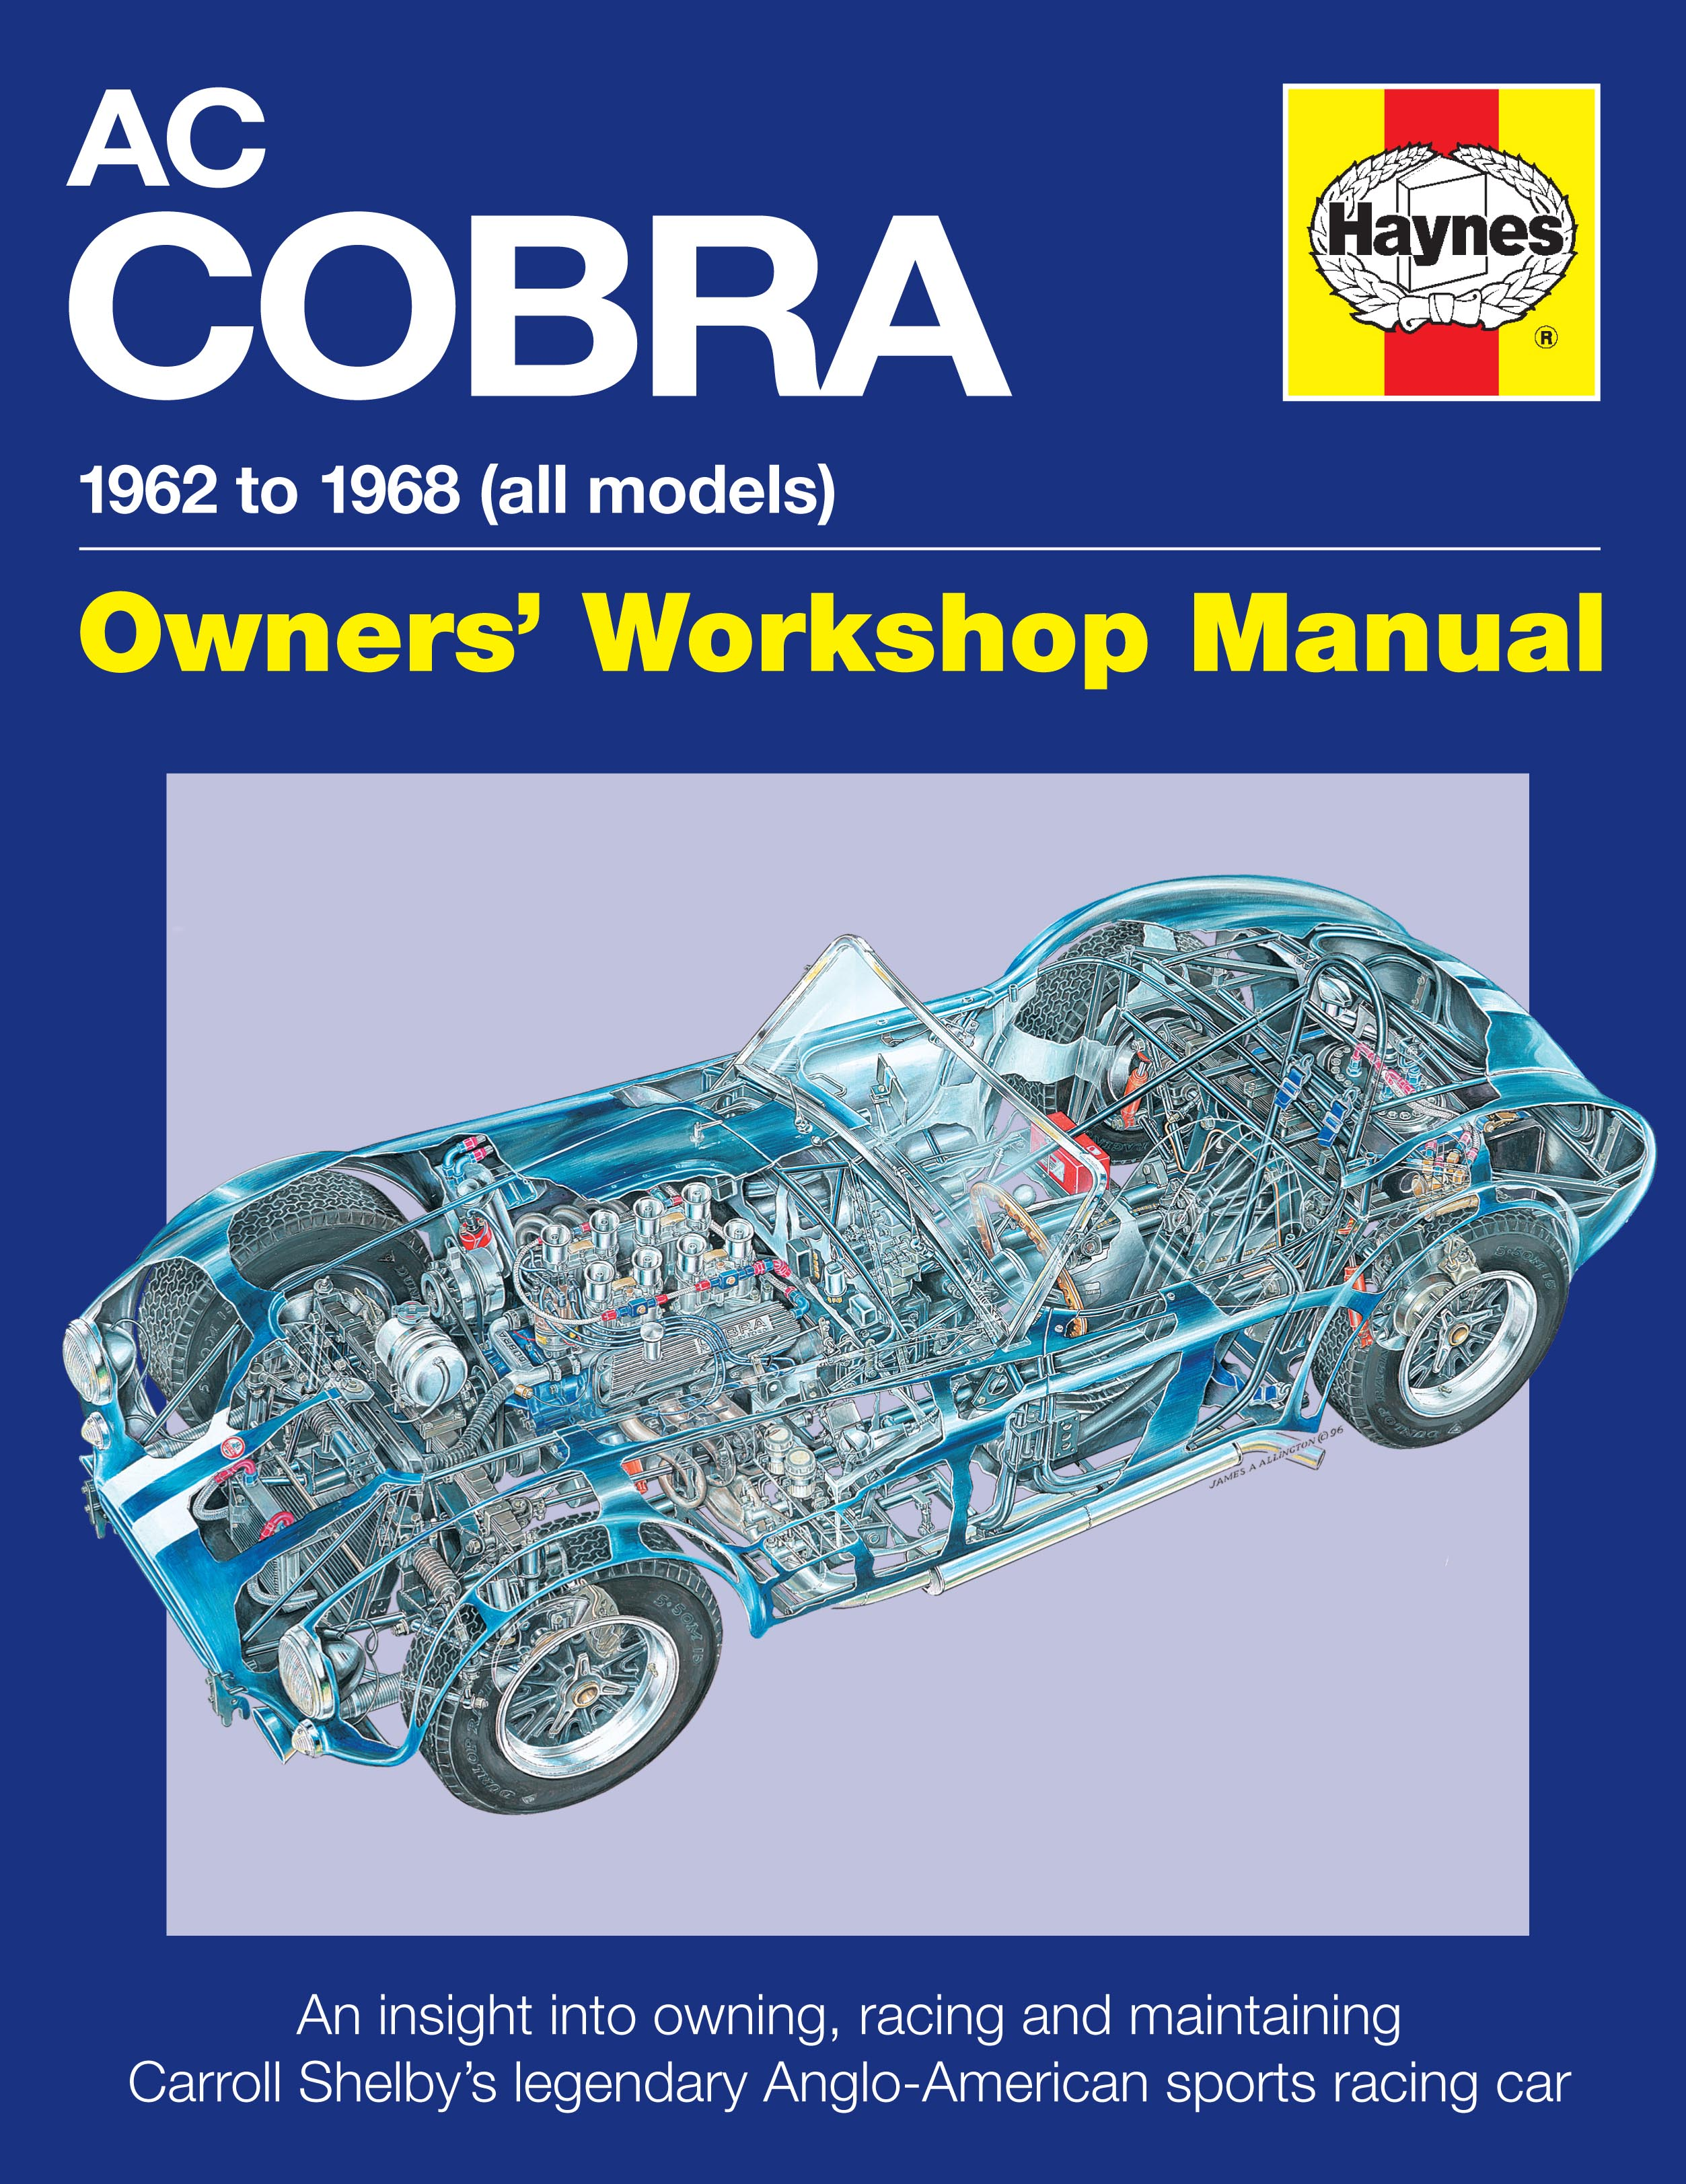 Sentinel AC Cobra 1962 to 1968 (all models) OWNER'S WORKSHOP MANUAL BOOK  CARROLL SHELBY